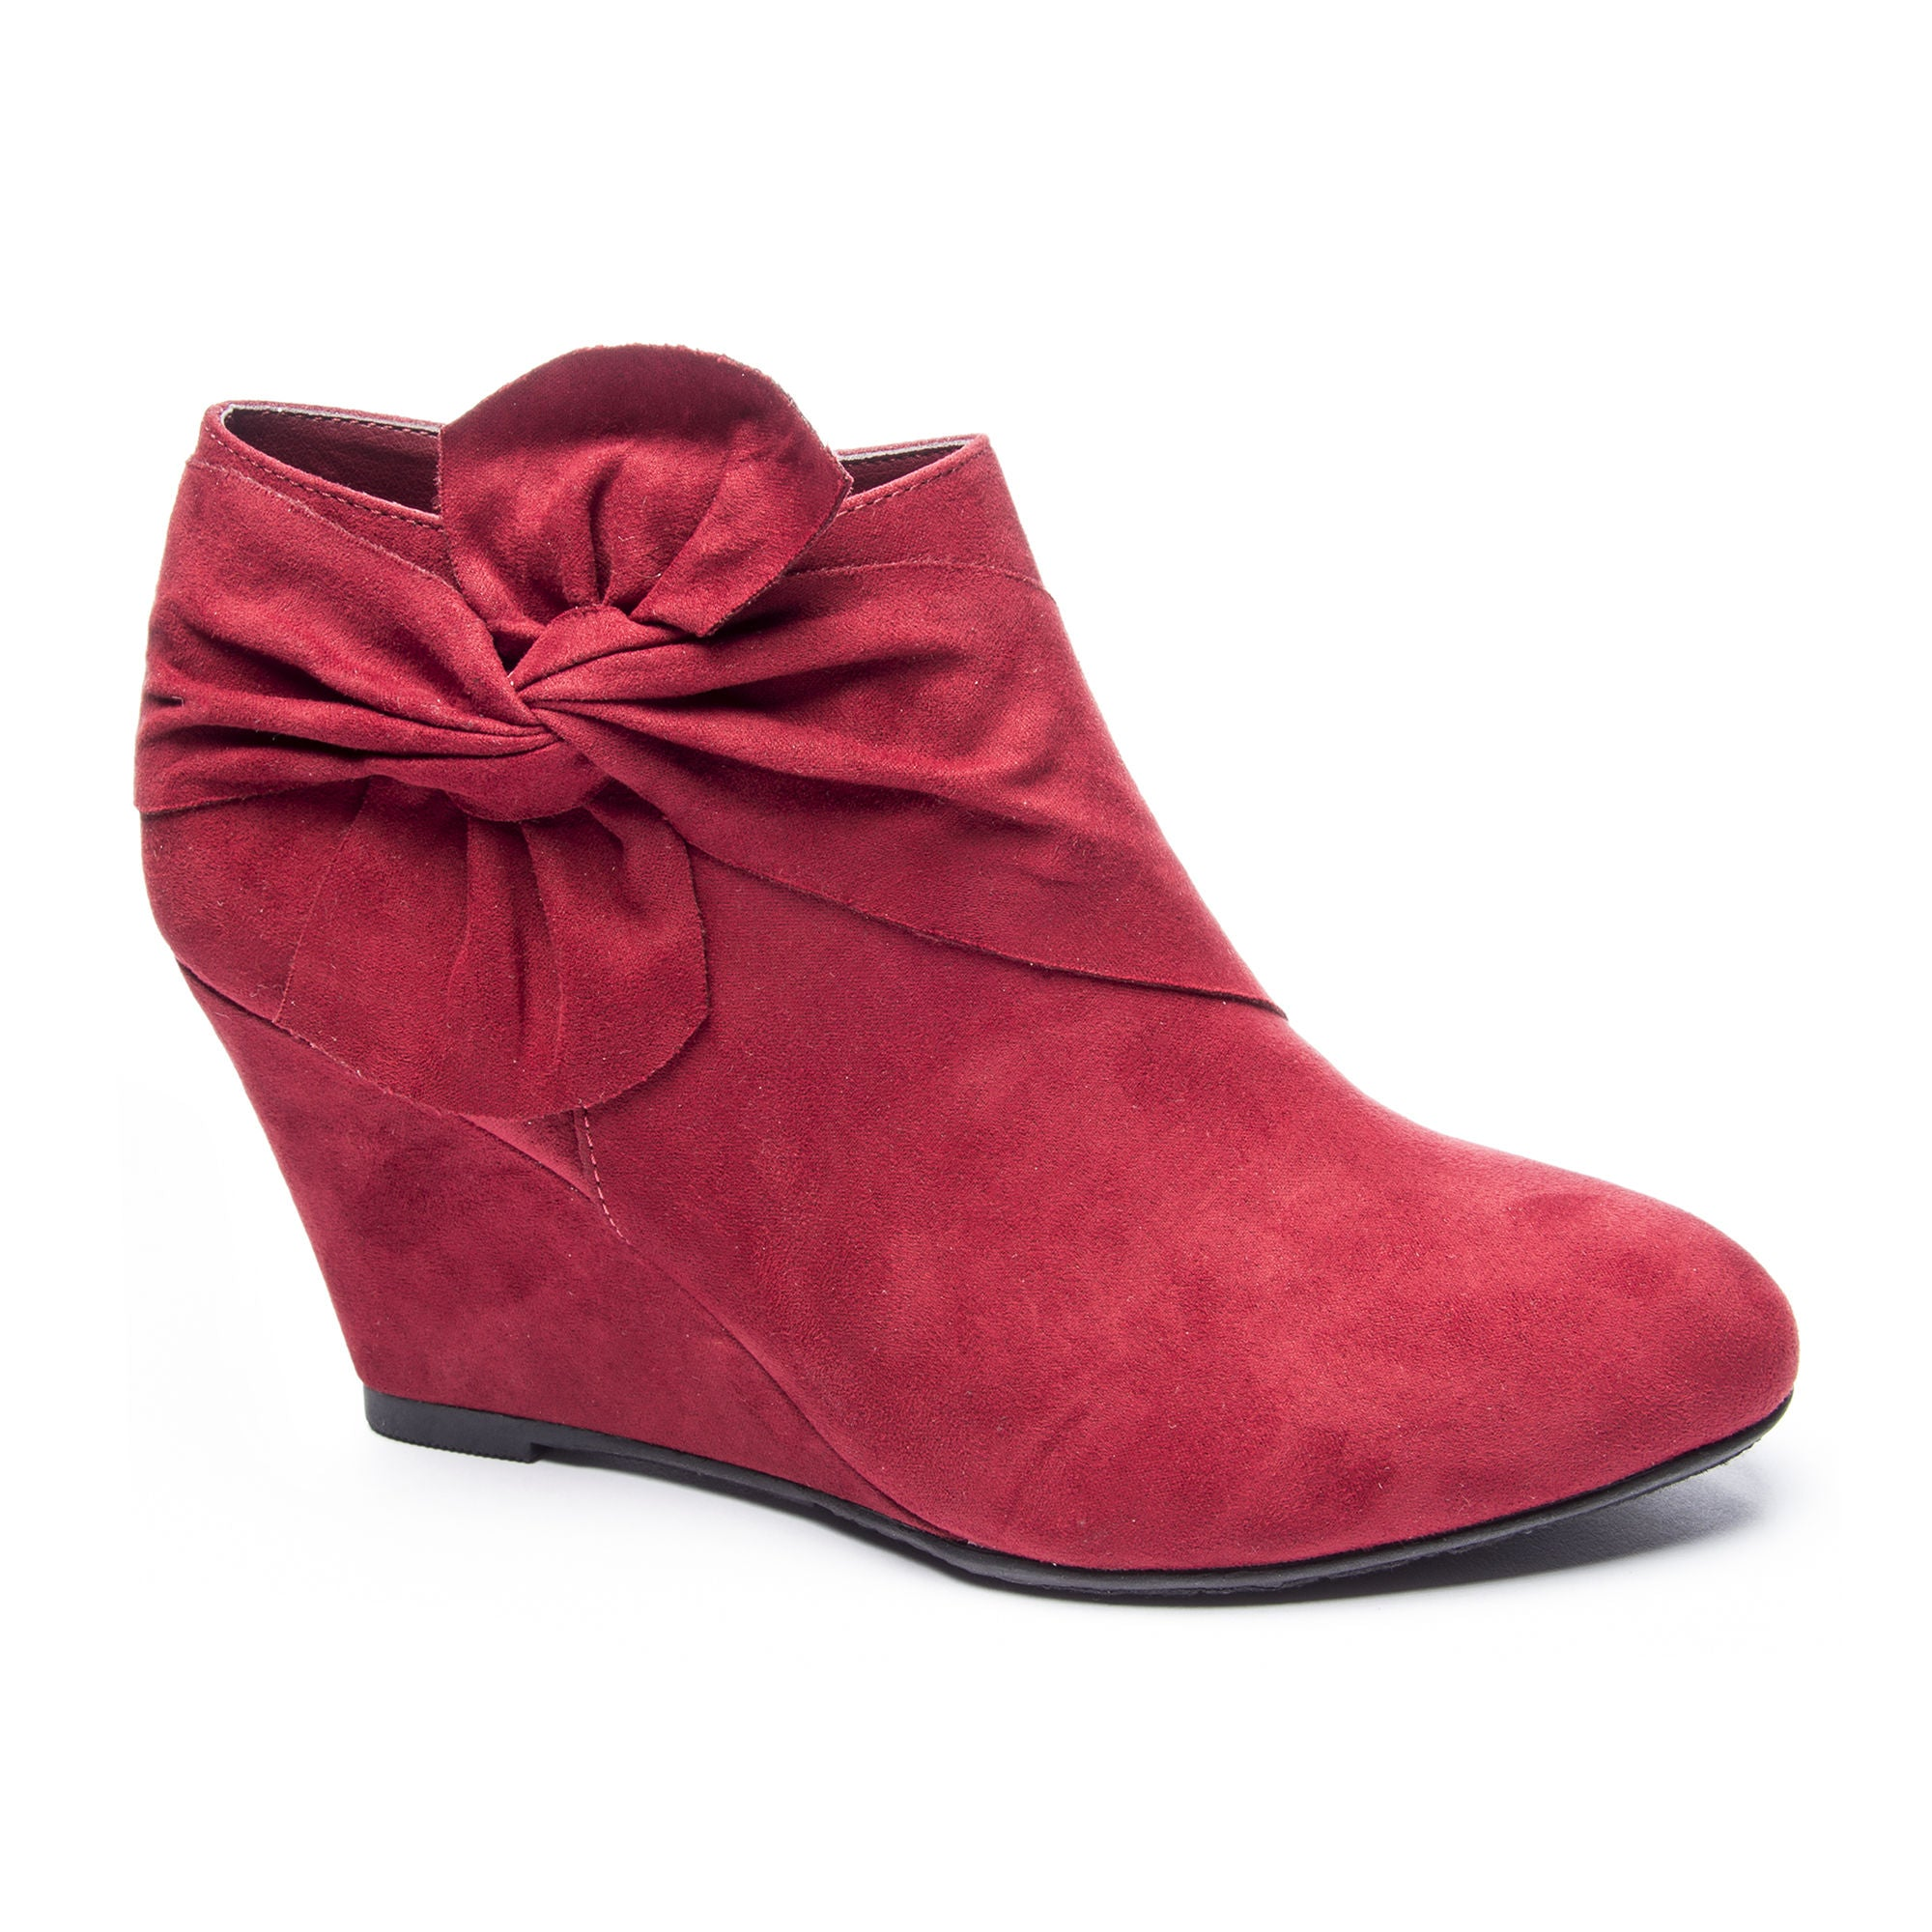 267646396eb4 Chinese Laundry Vivid Wedge Bootie - Cherry Red - Eleven Oaks Boutique